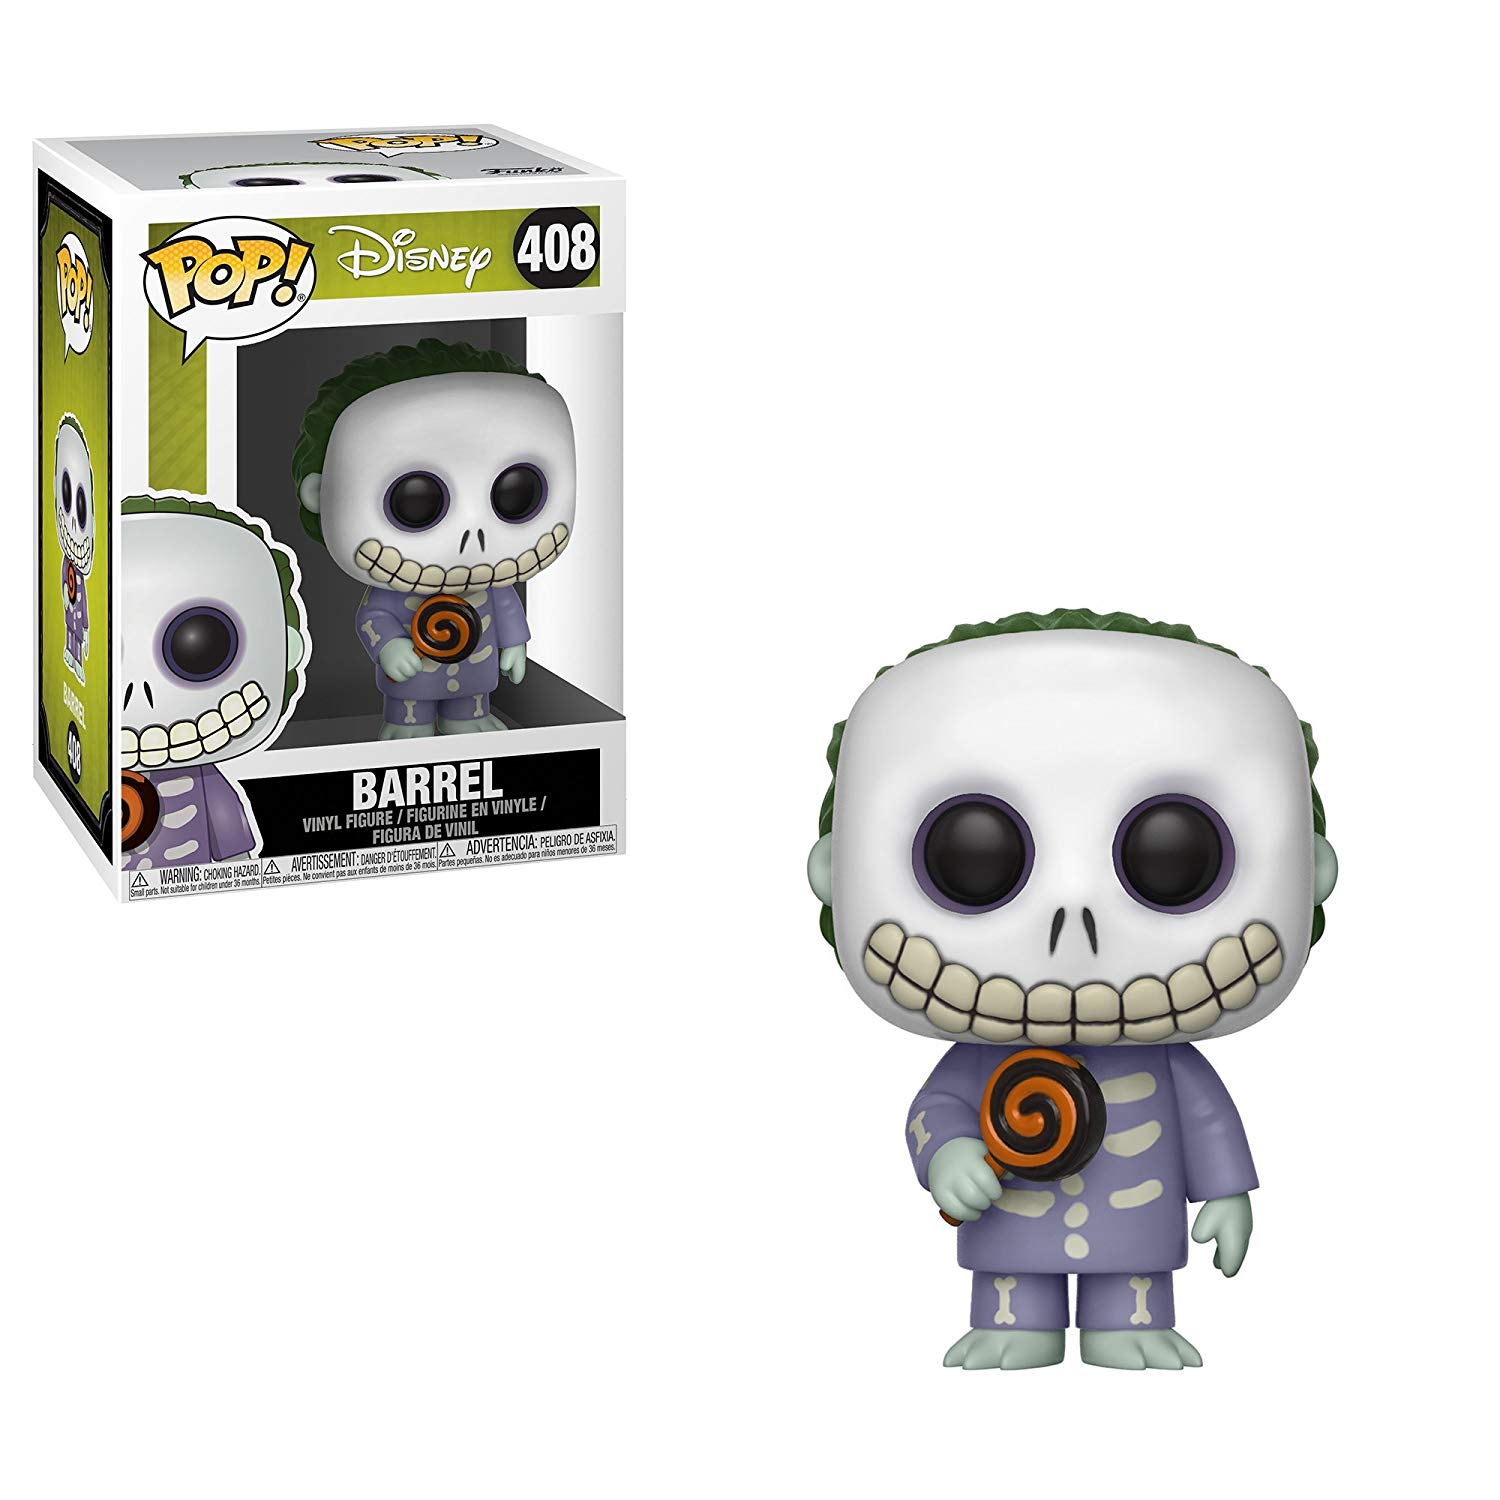 bda5fdf4a6b89 Nightmare Before Christmas Barrel Funko Pop Vinyl - Shop Retro Active